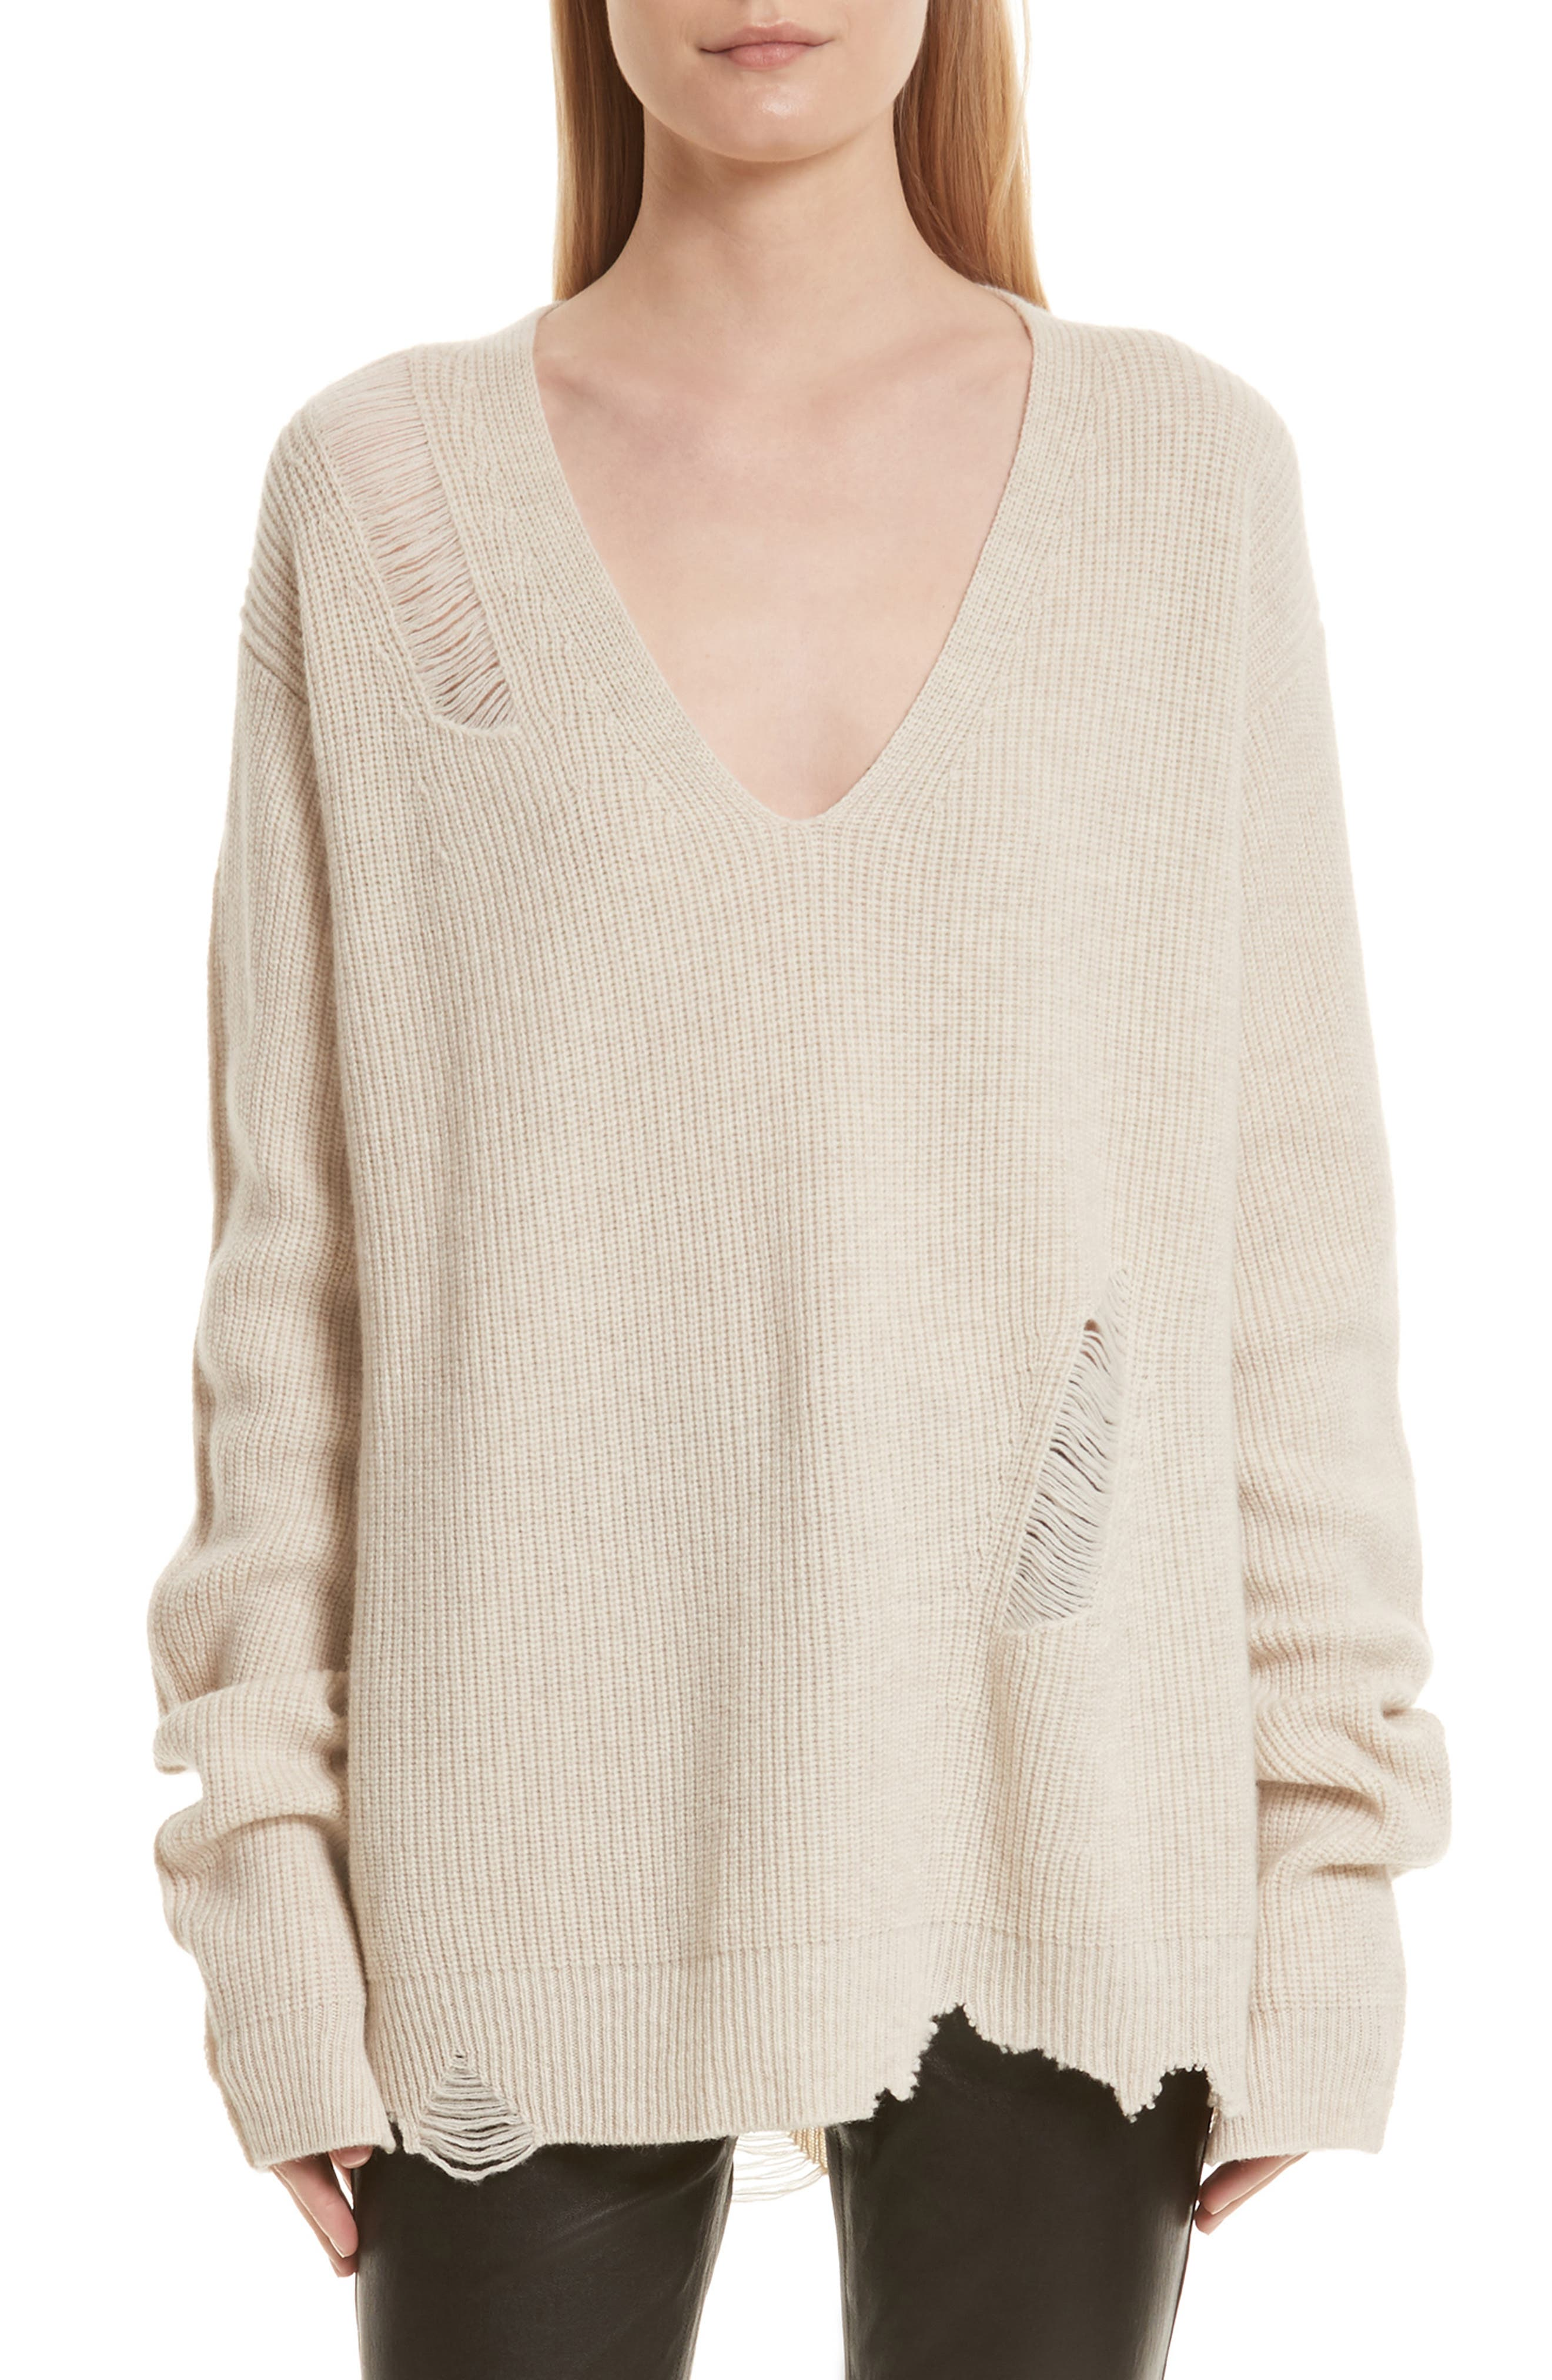 Helmut Lang Distressed Wool & Cashmere Sweater